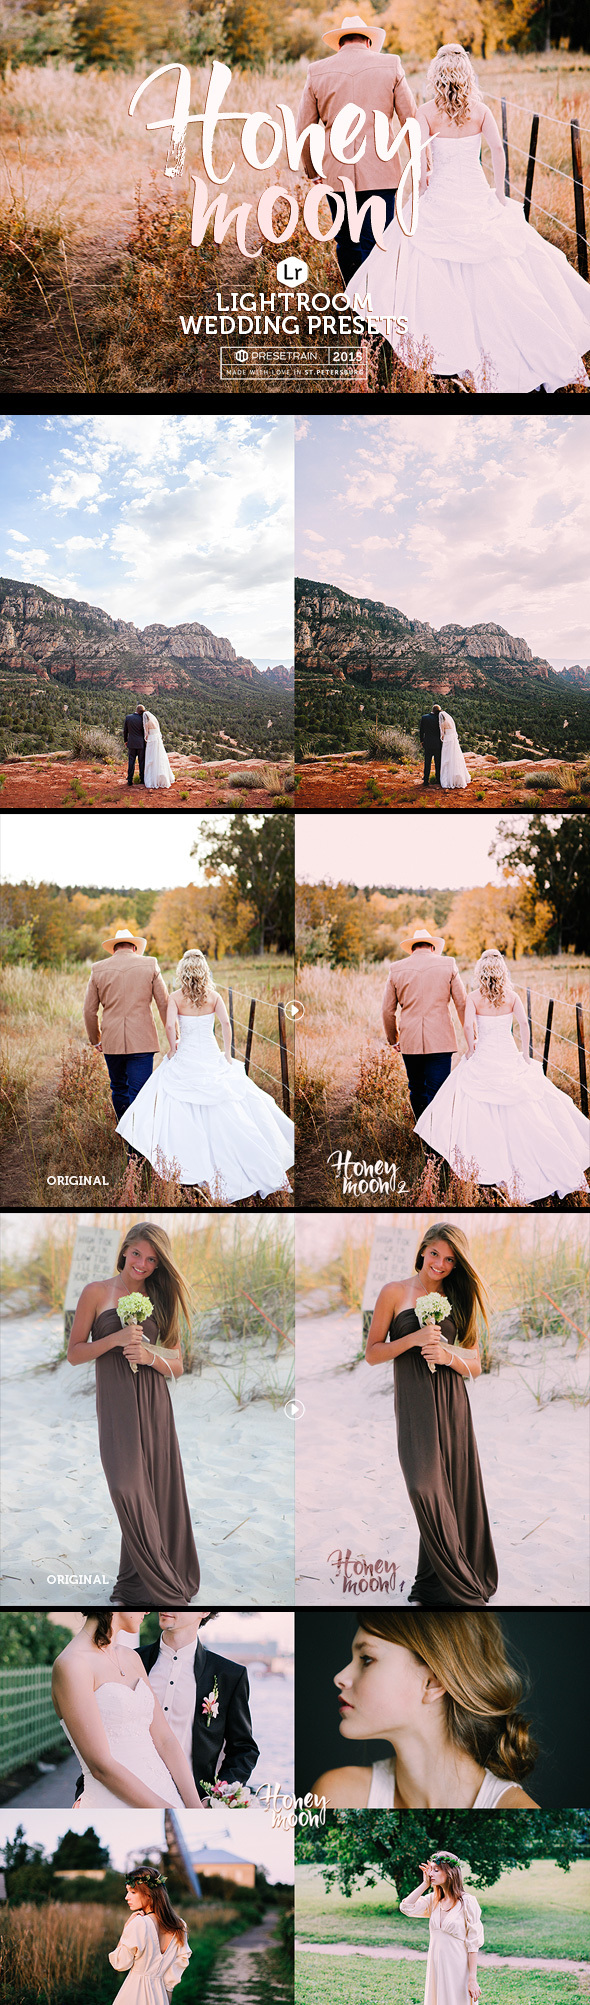 Honeymoon Wedding Lightroom Presets - Wedding Lightroom Presets